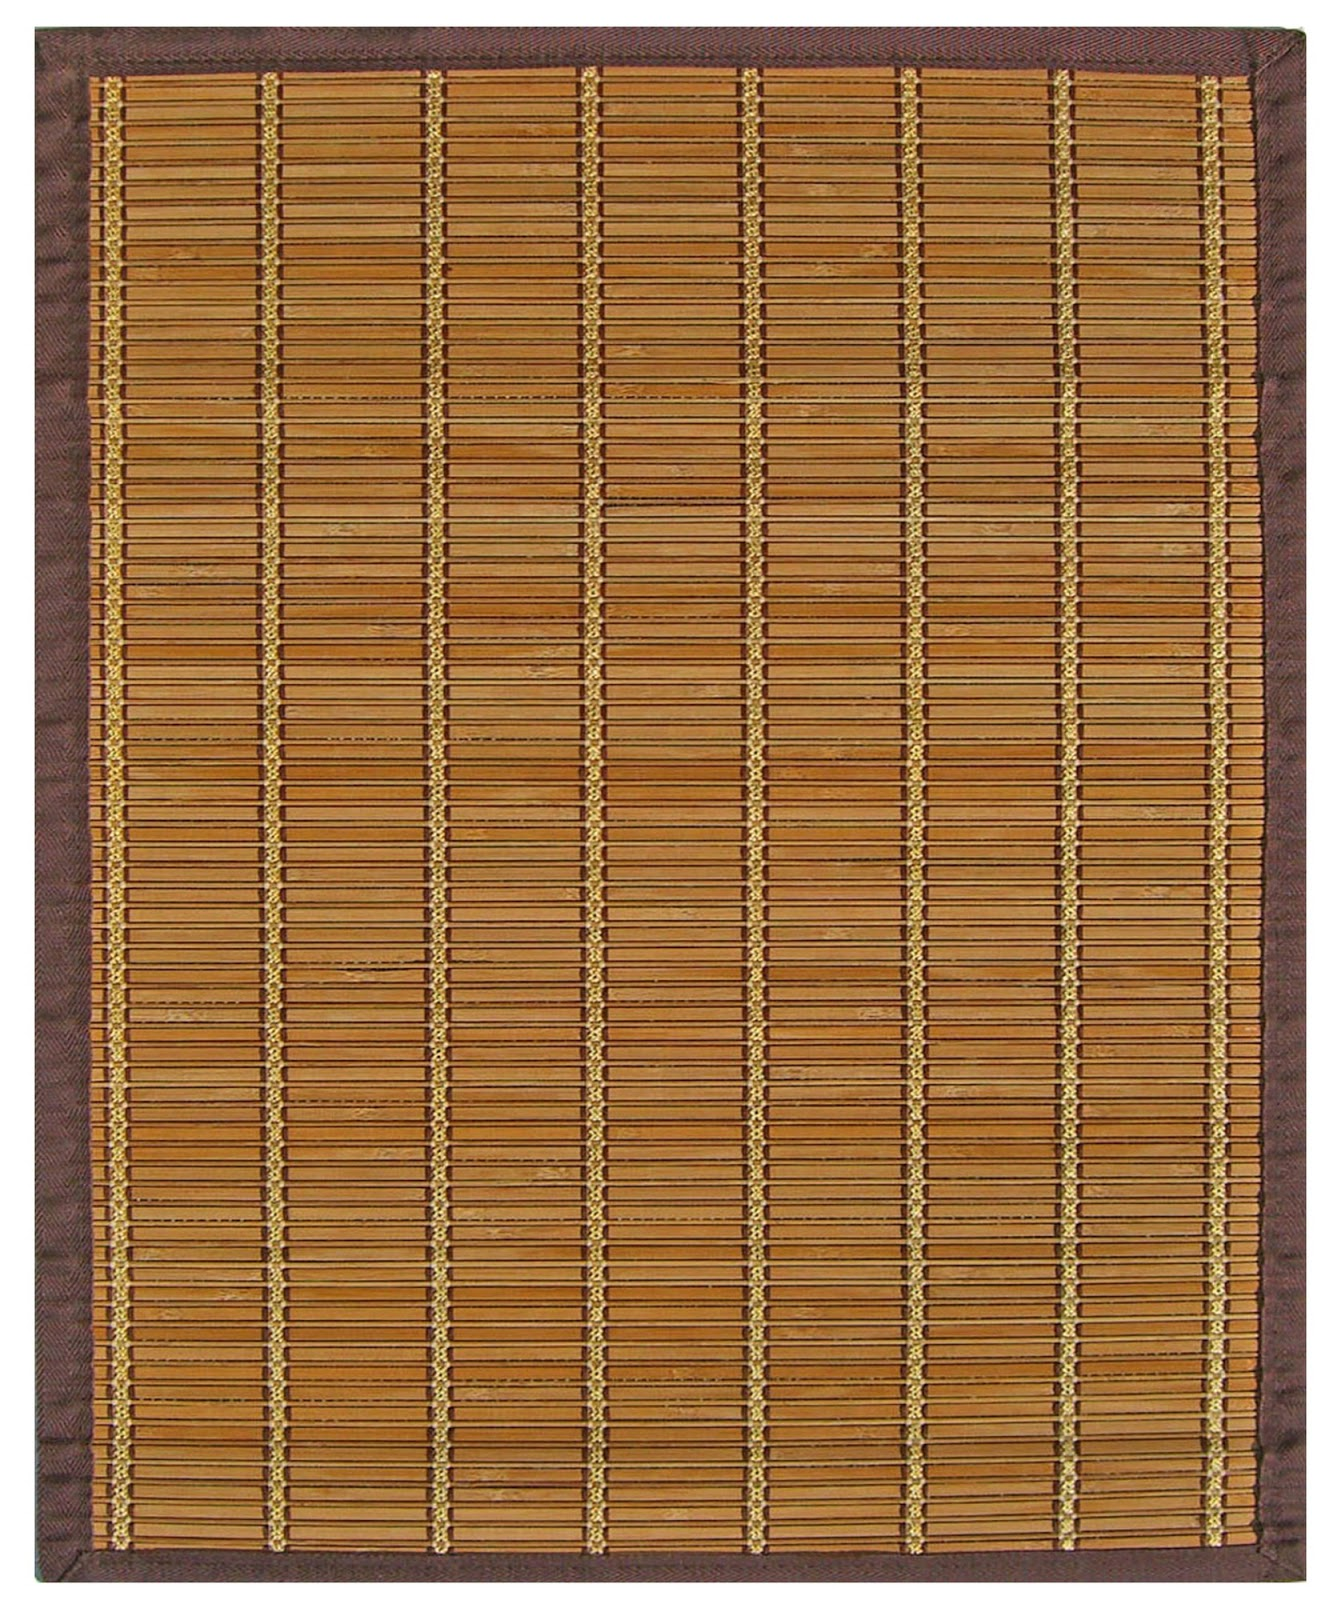 Bamboo carpet